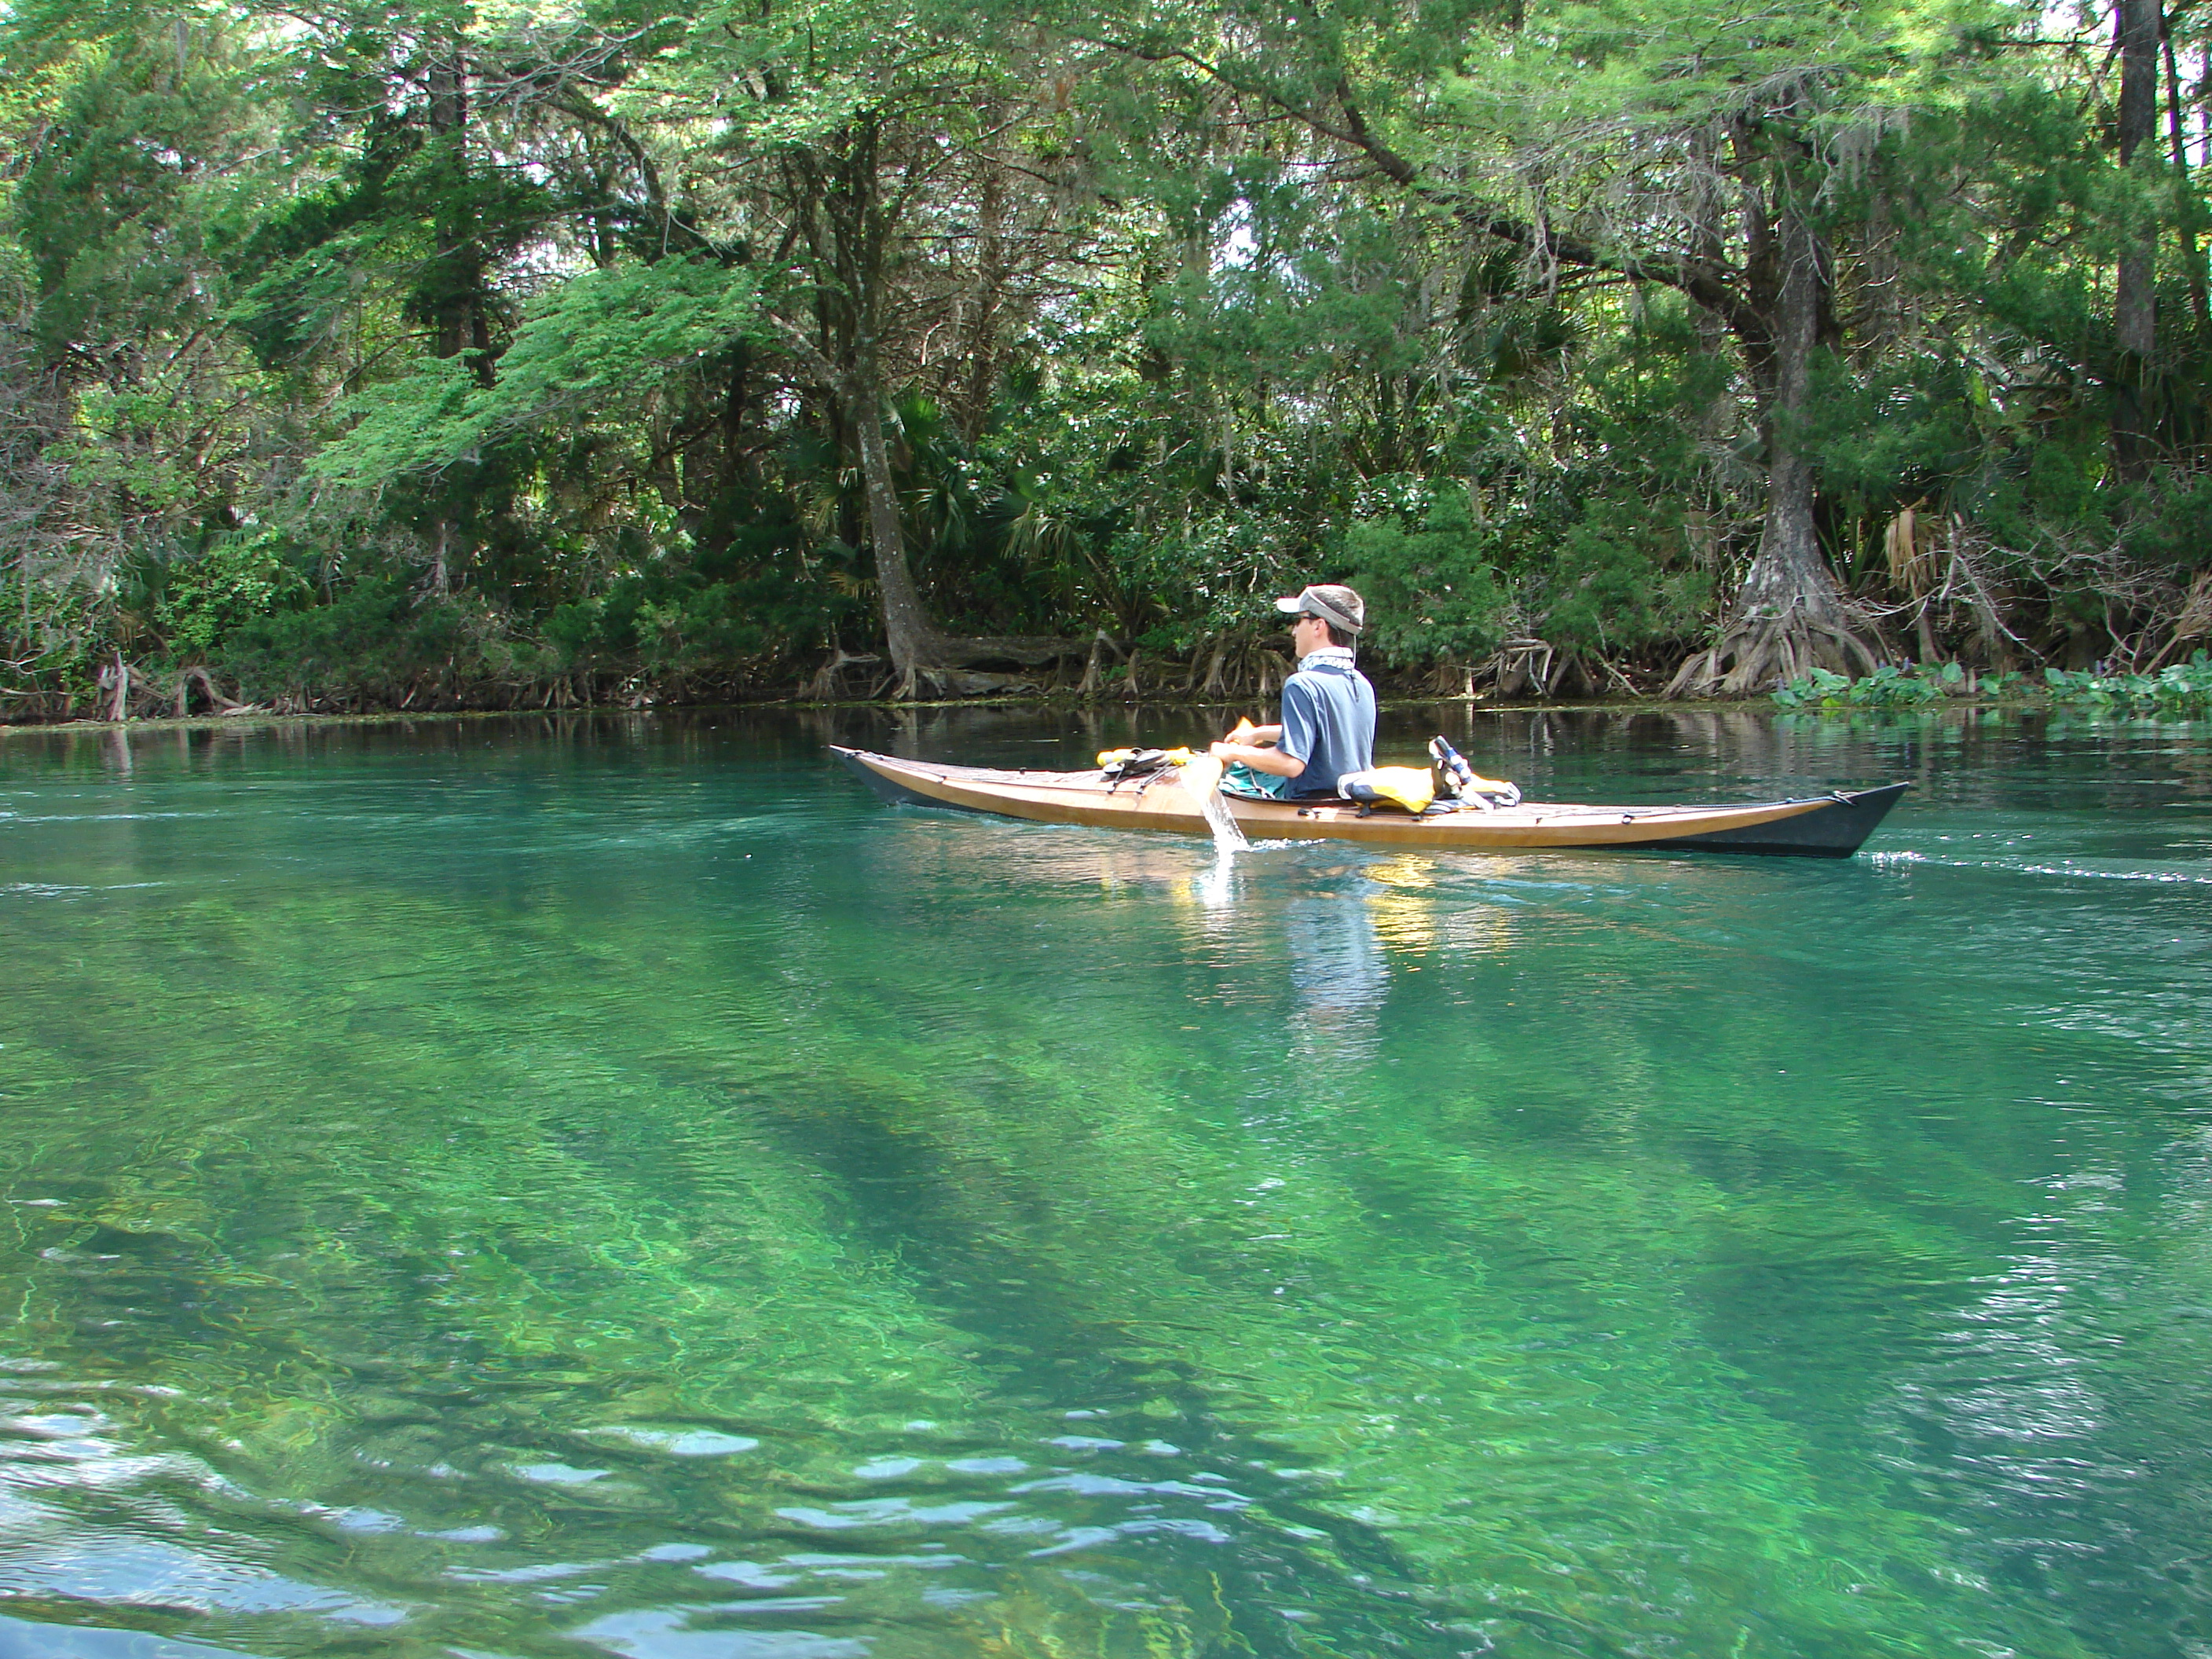 paddler on the silver river In: Judge's Ruling Threatens Silver Springs | Our Santa Fe River, Inc. (OSFR) | Protecting the Santa Fe River in North Florida